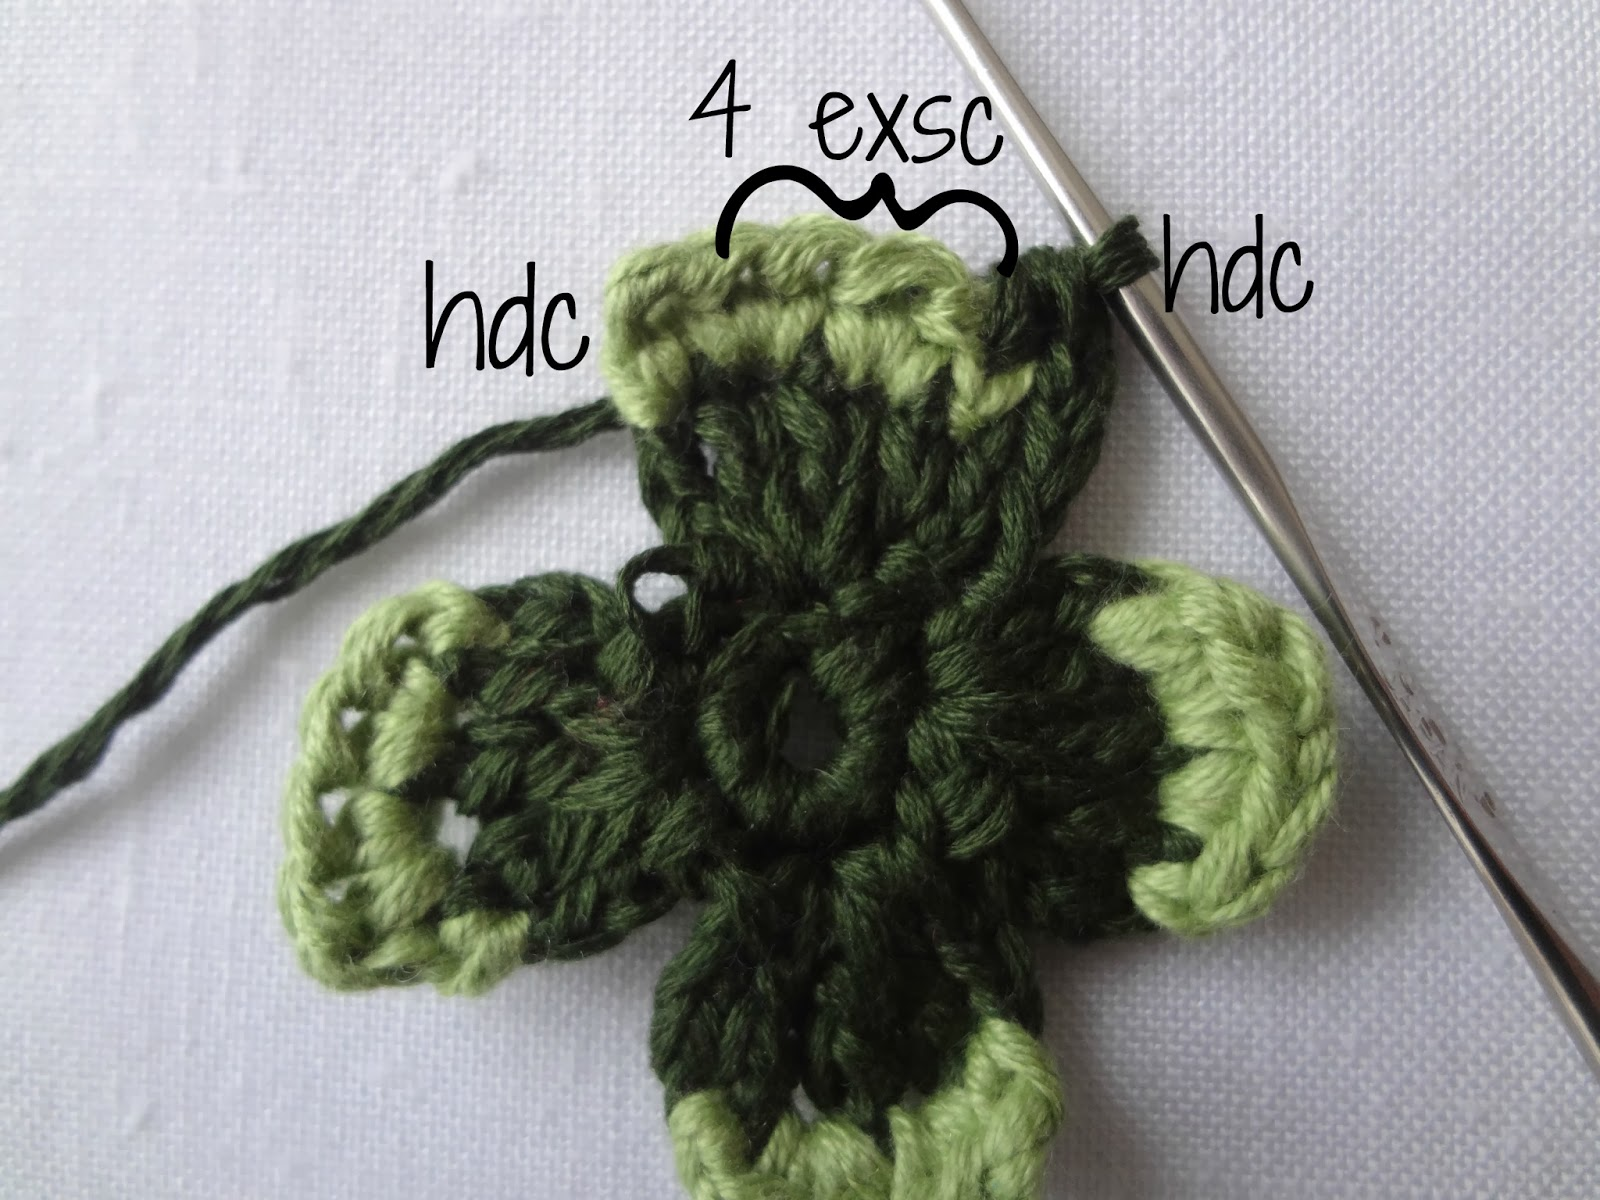 Crochet Stitch Exsc : single crochet, yarn over and instead pulling through both stitches ...